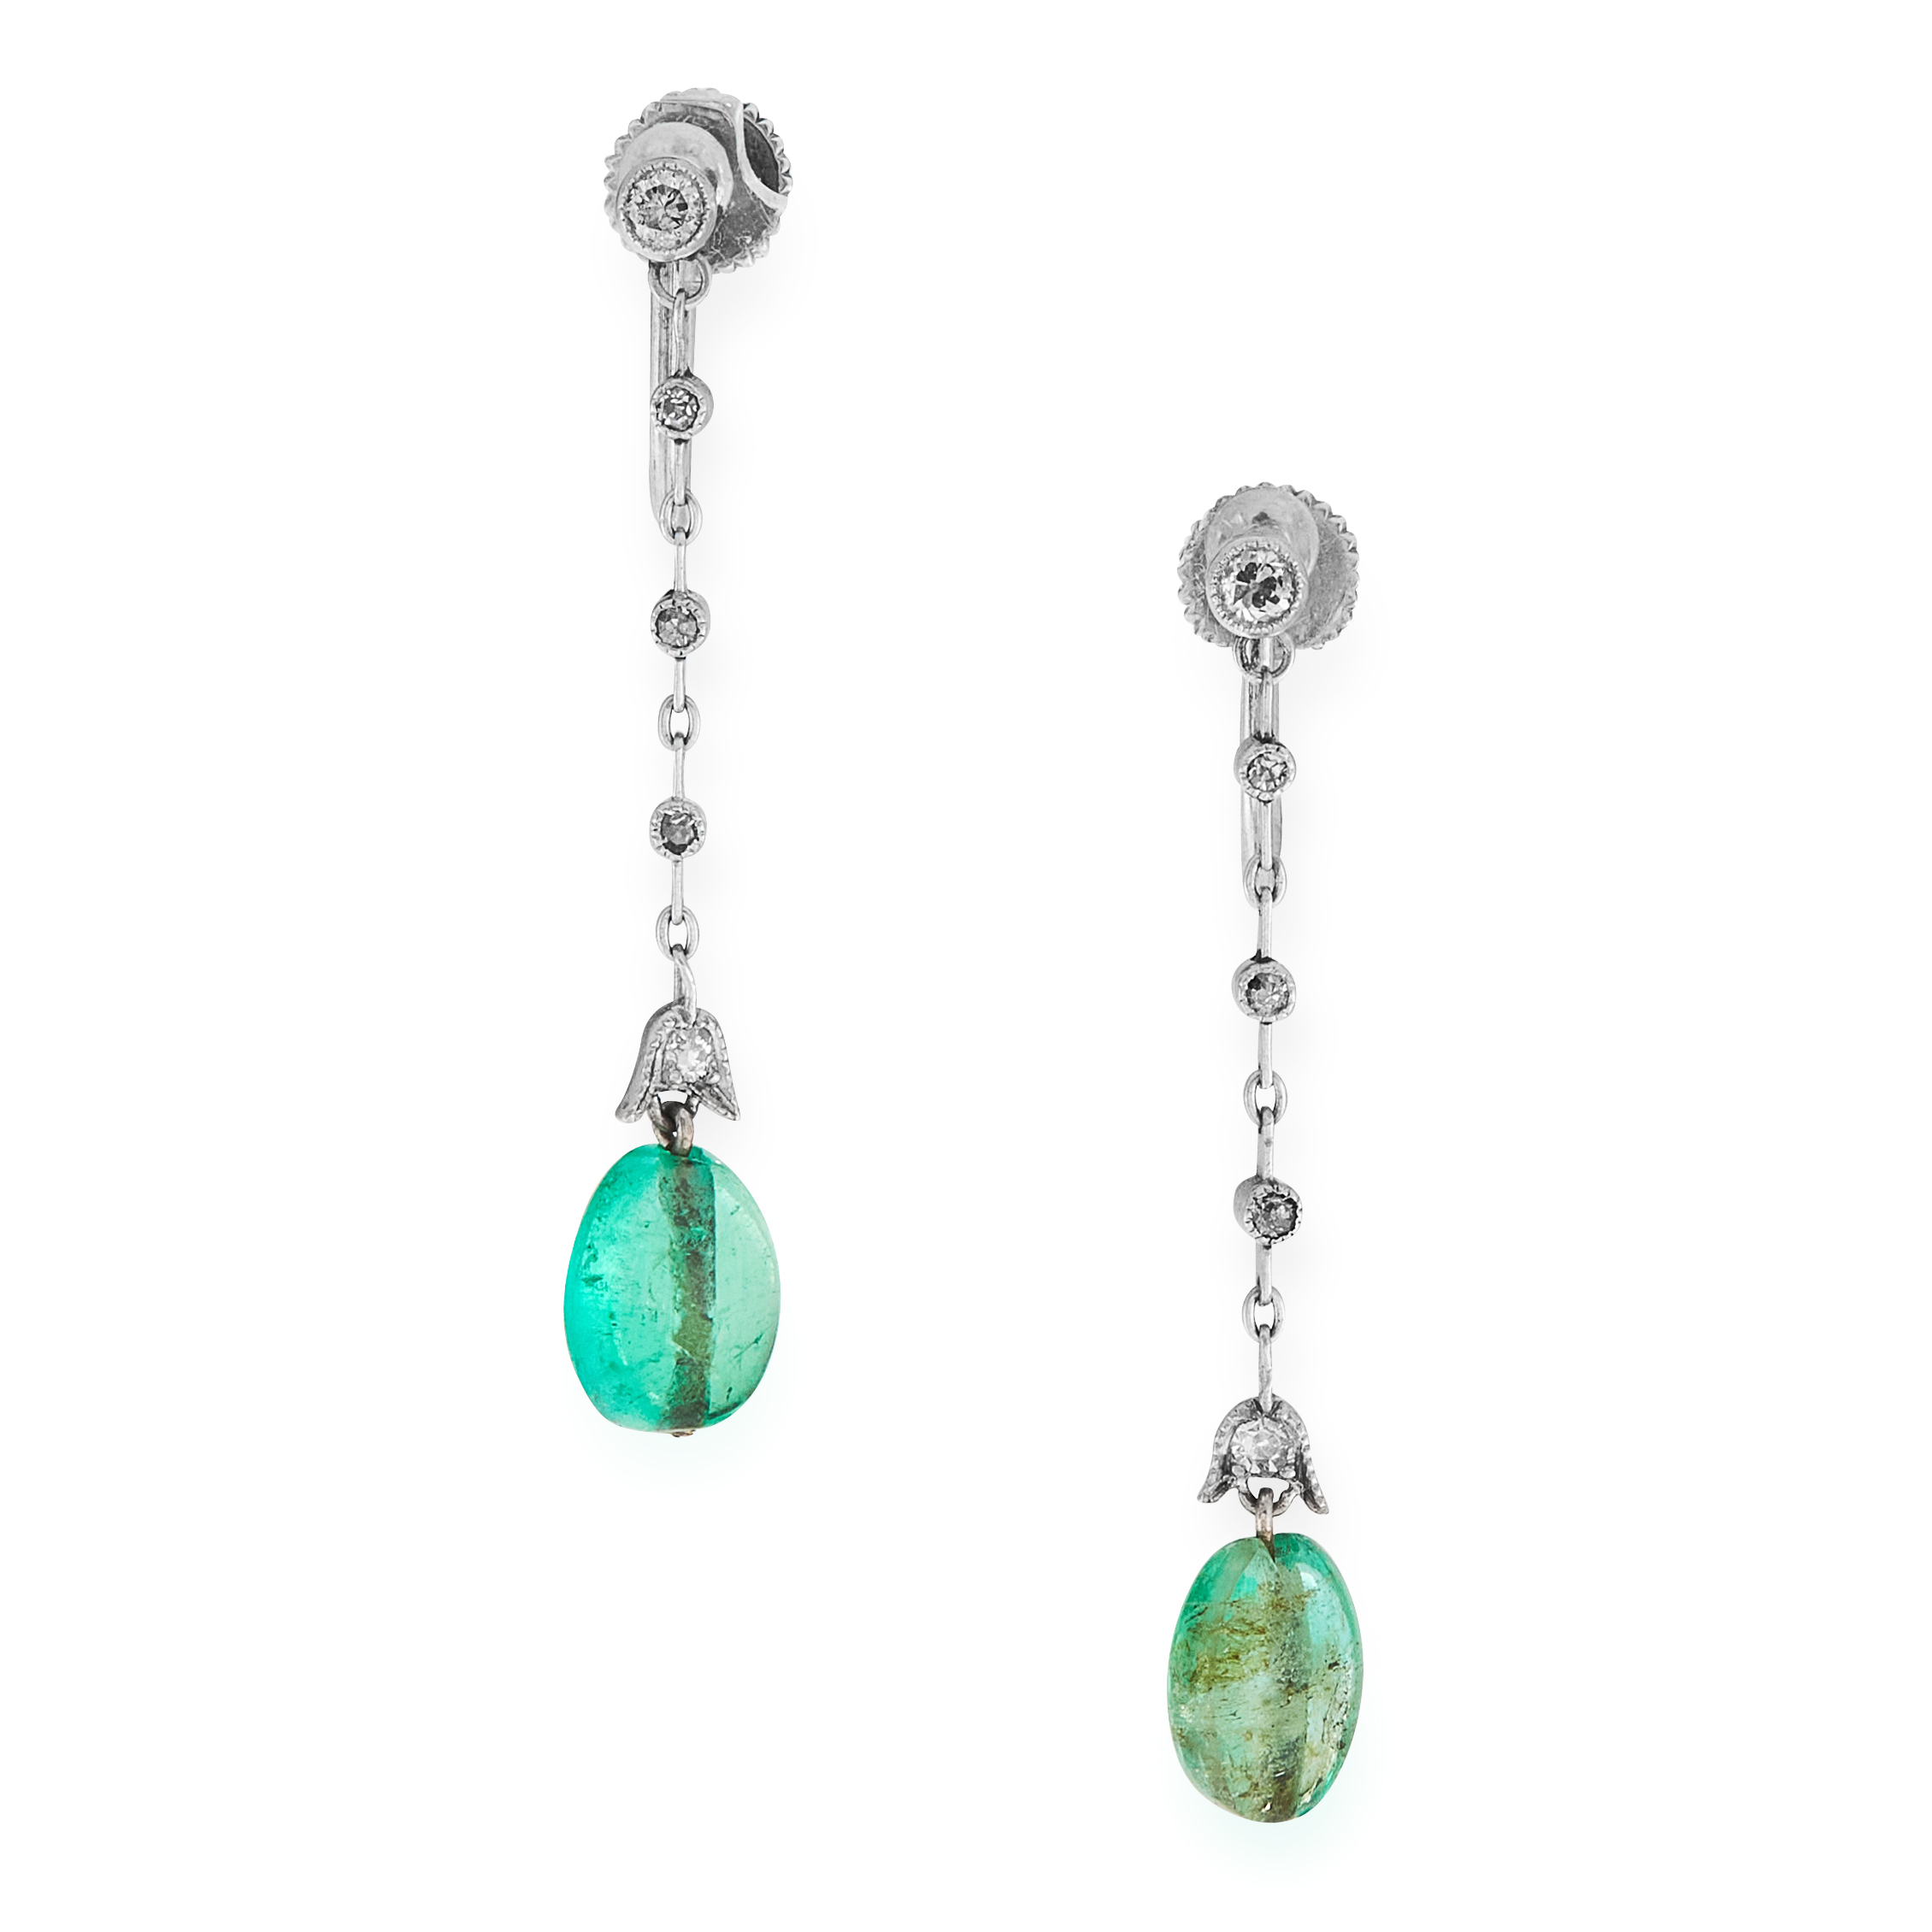 A PAIR OF EMERALD AND DIAMOND DROP EARRINGS each set with a polished emerald bead below a series